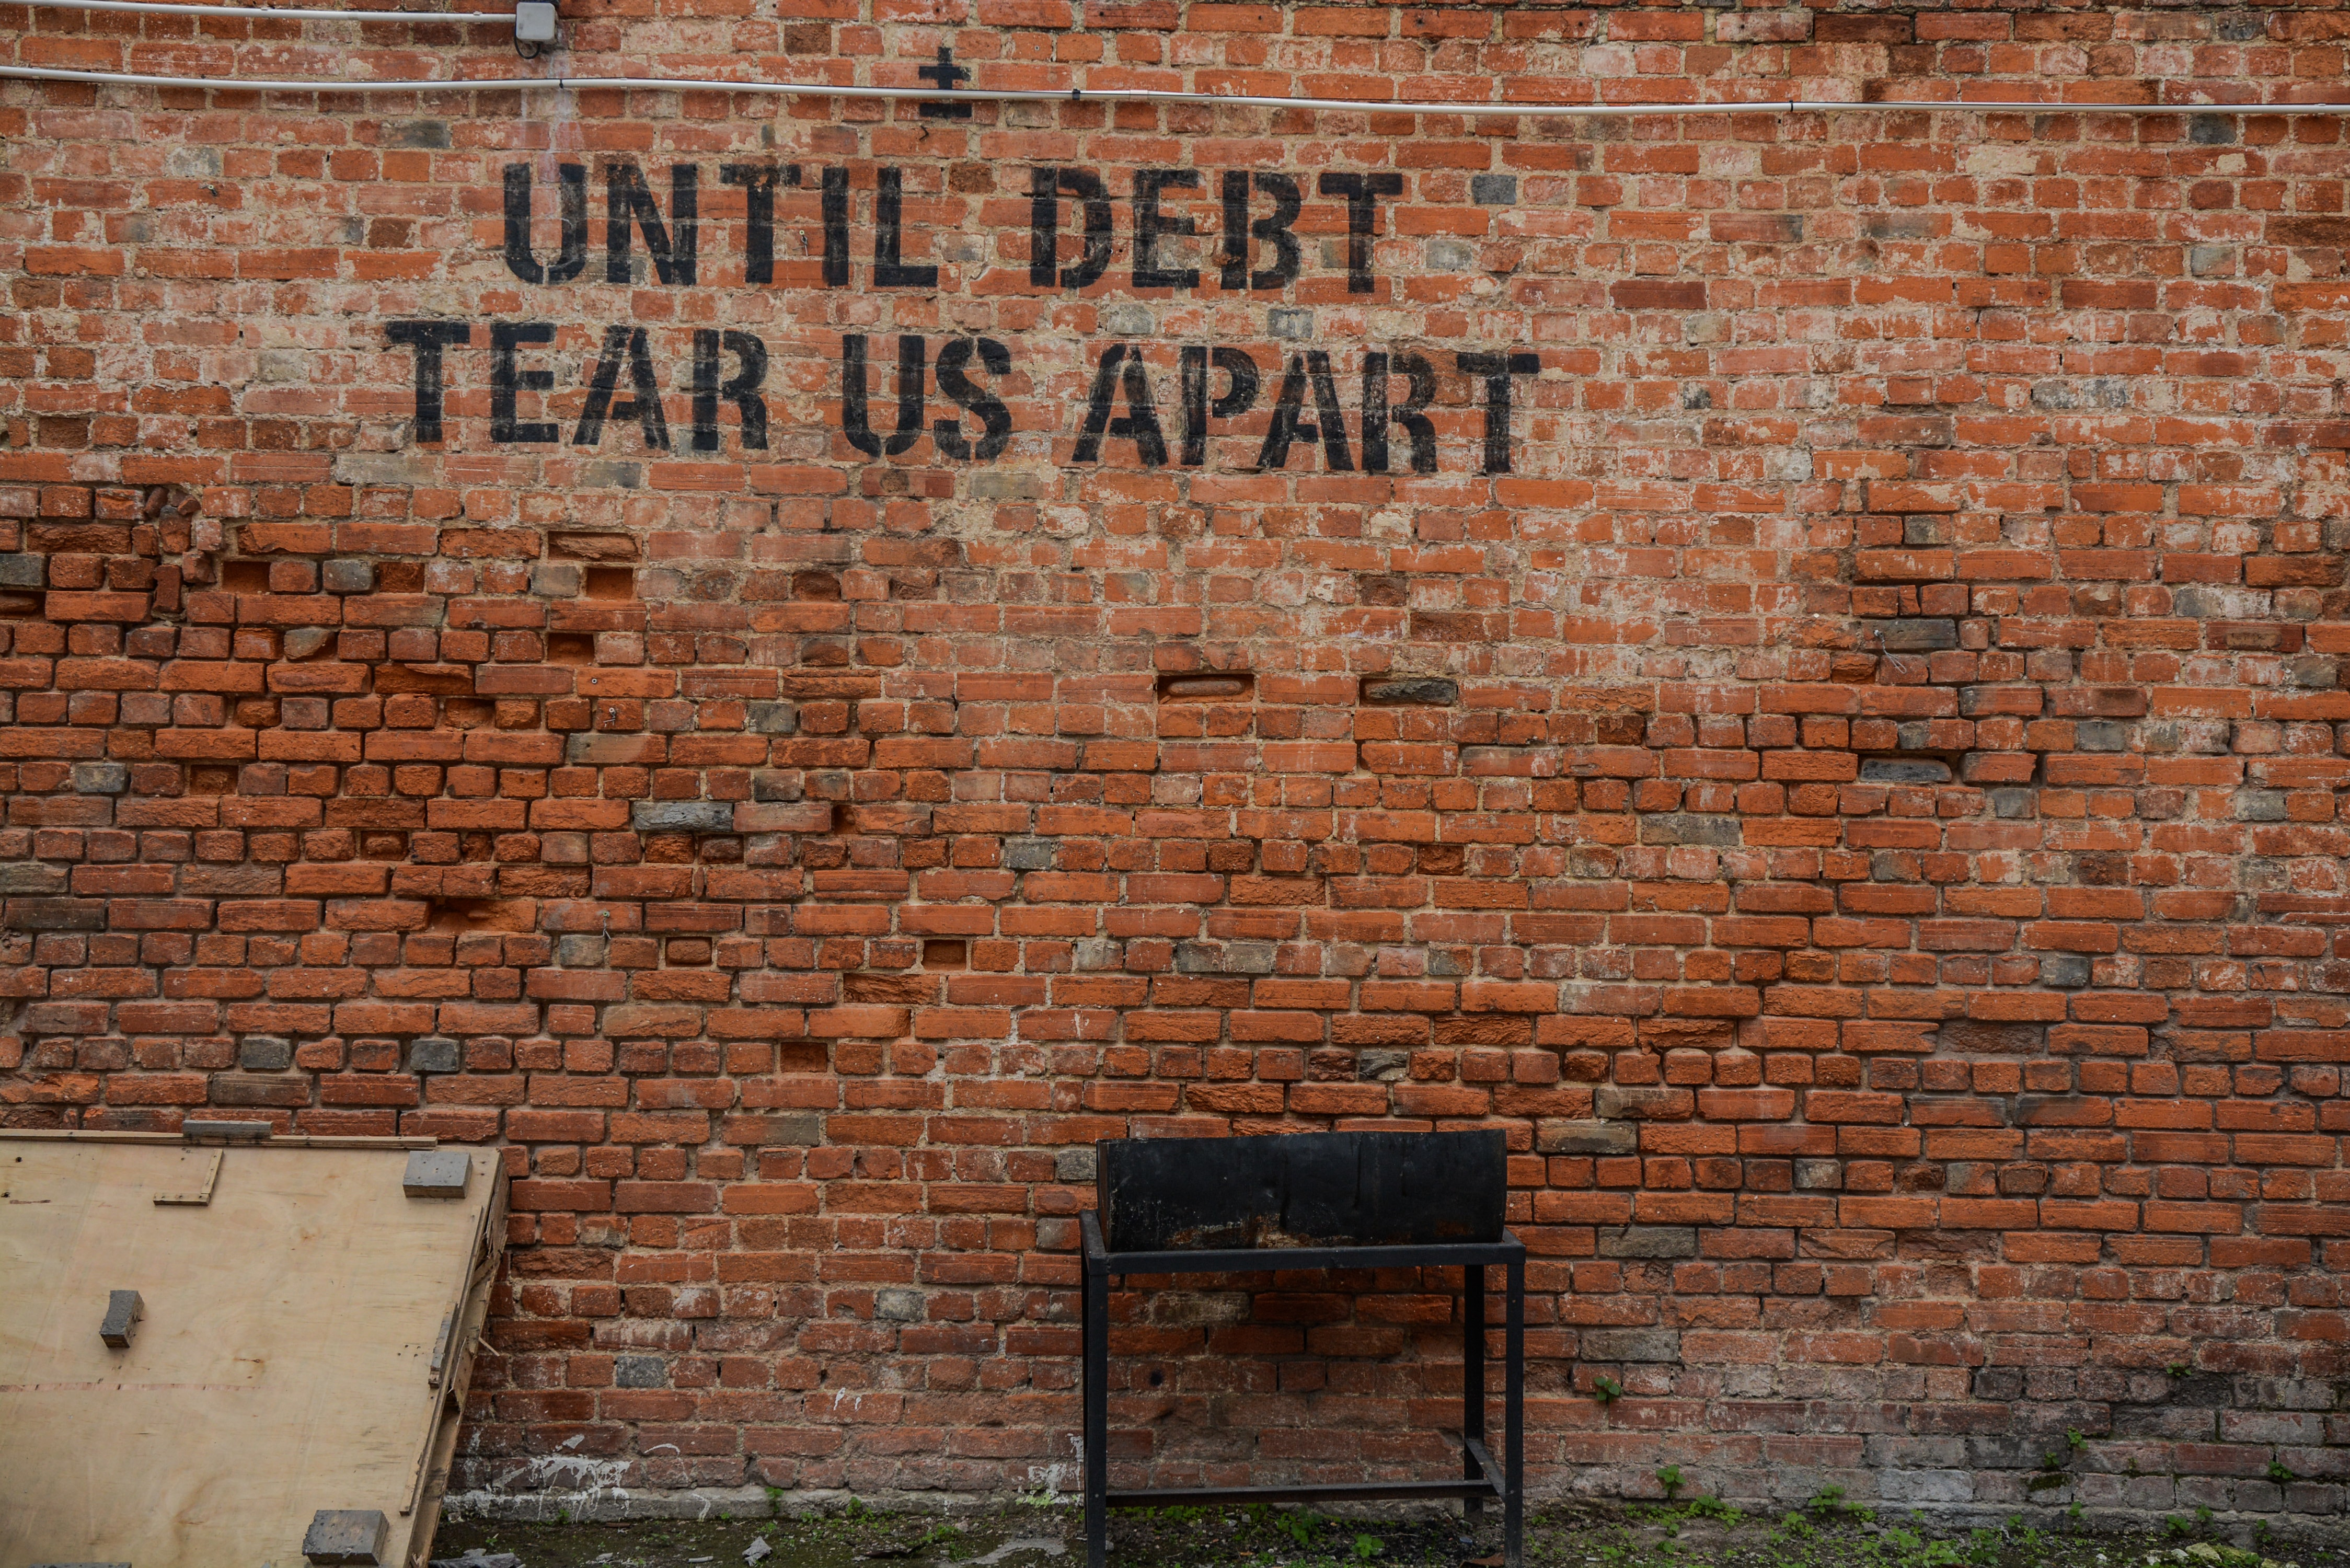 letters printed on a red brick wall - until debt tear us apart